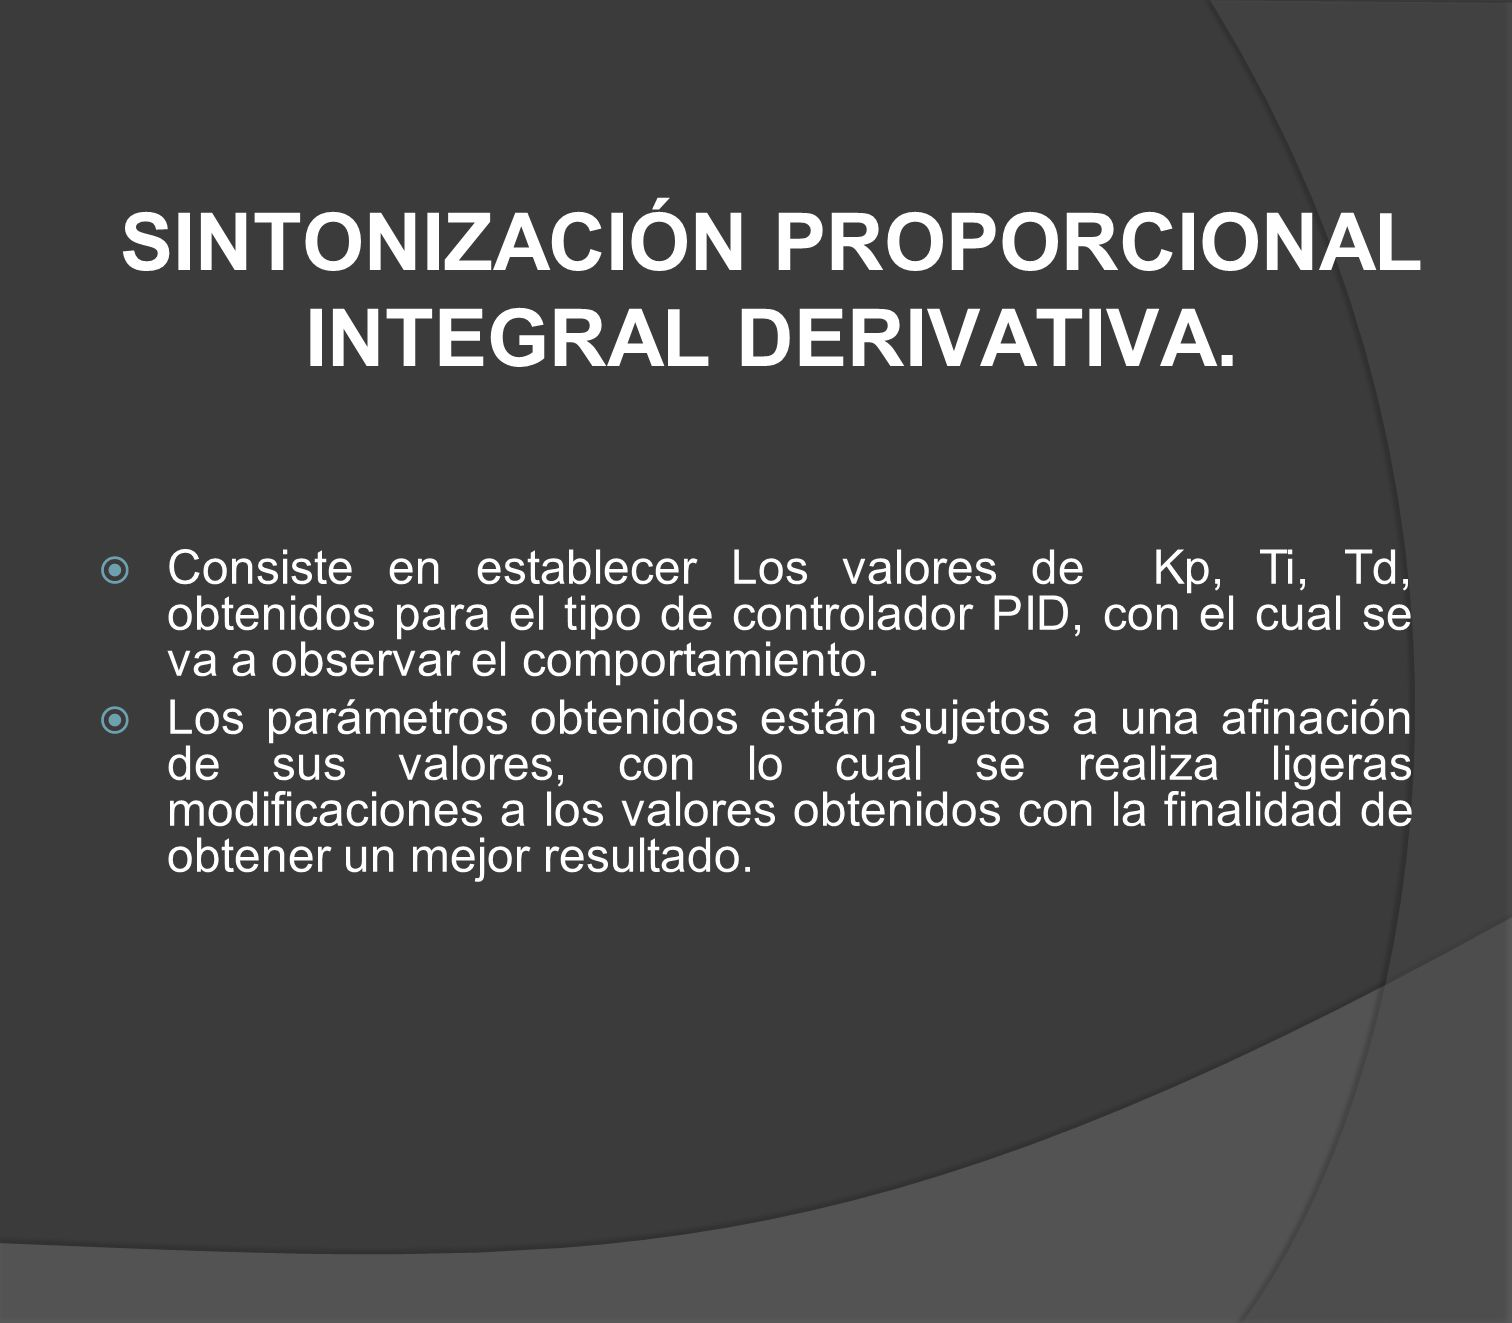 SINTONIZACIÓN PROPORCIONAL INTEGRAL DERIVATIVA.